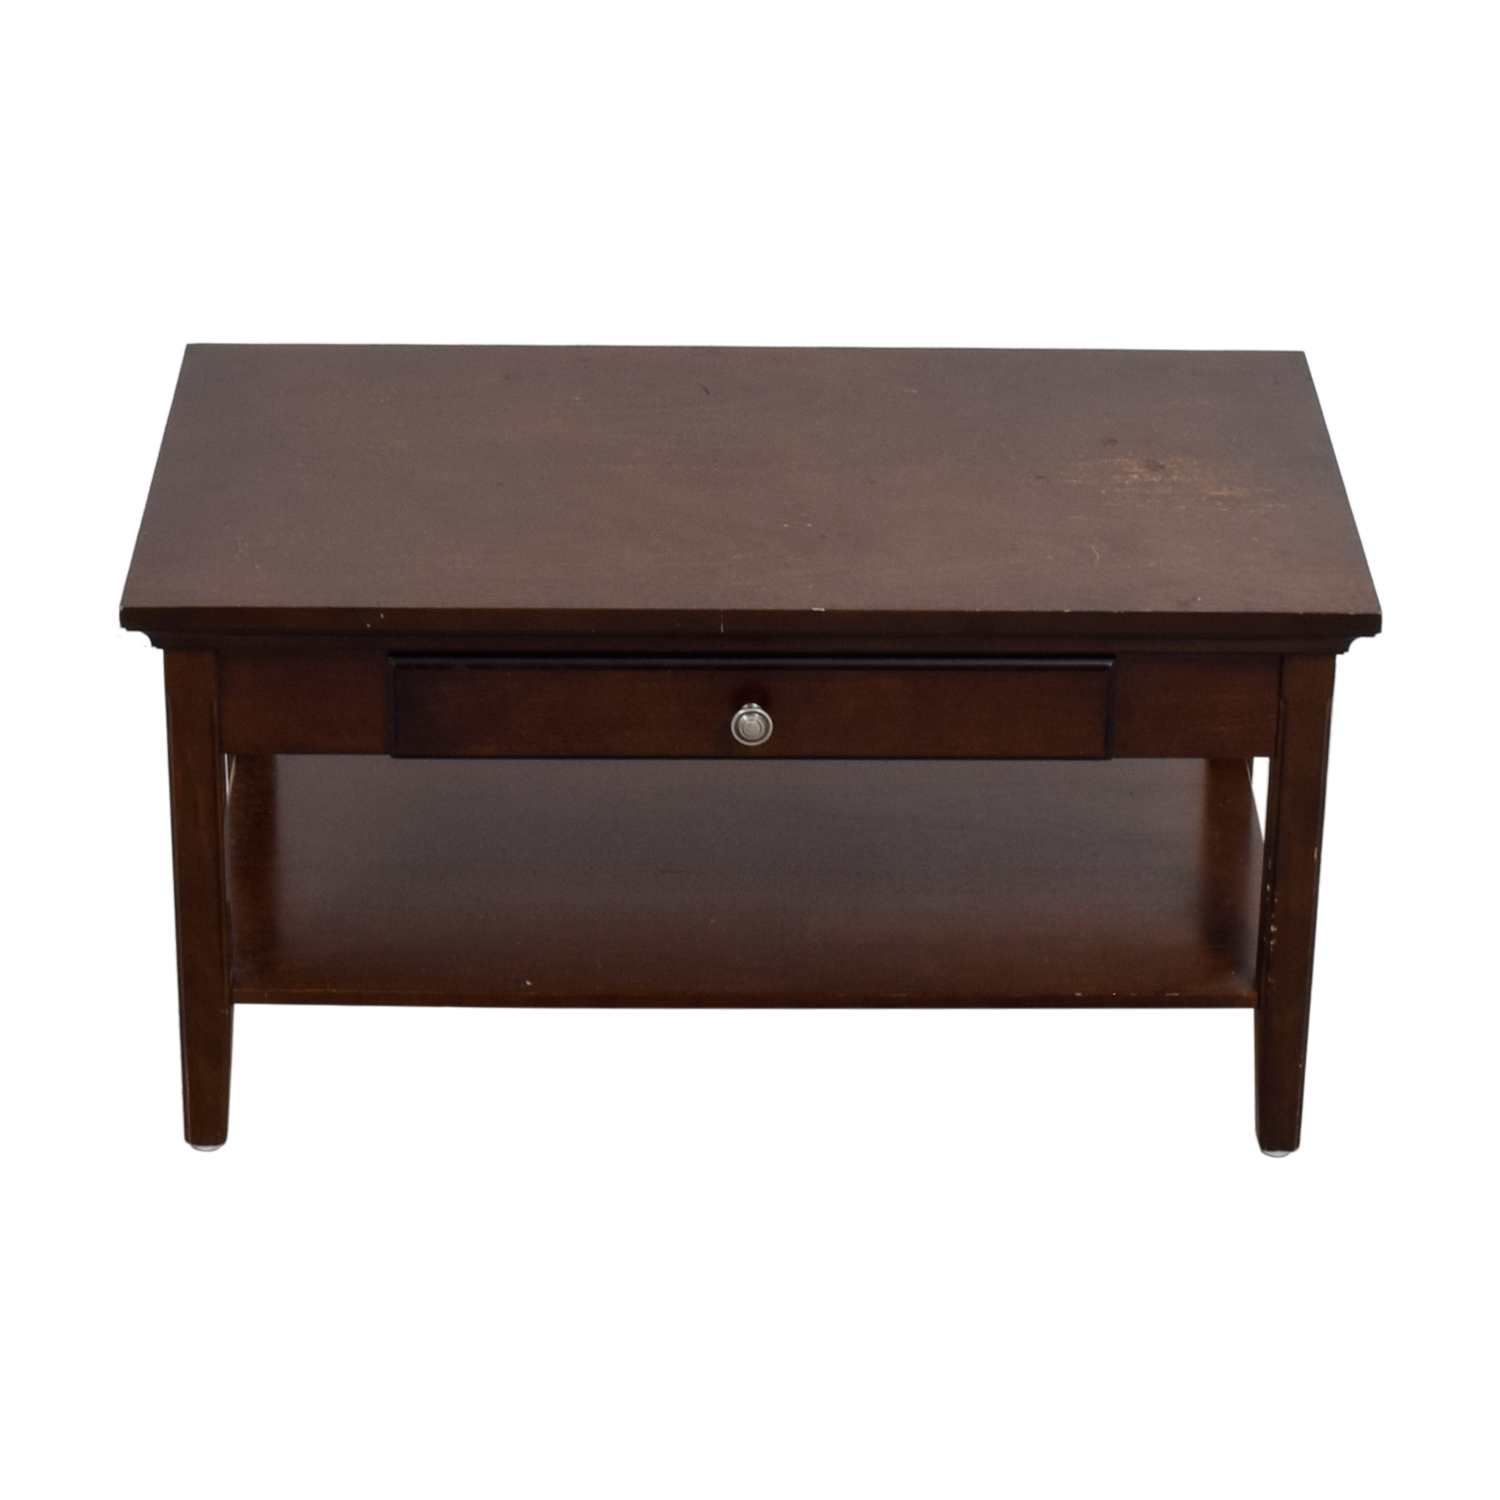 Wooden Classic Coffee Table nyc